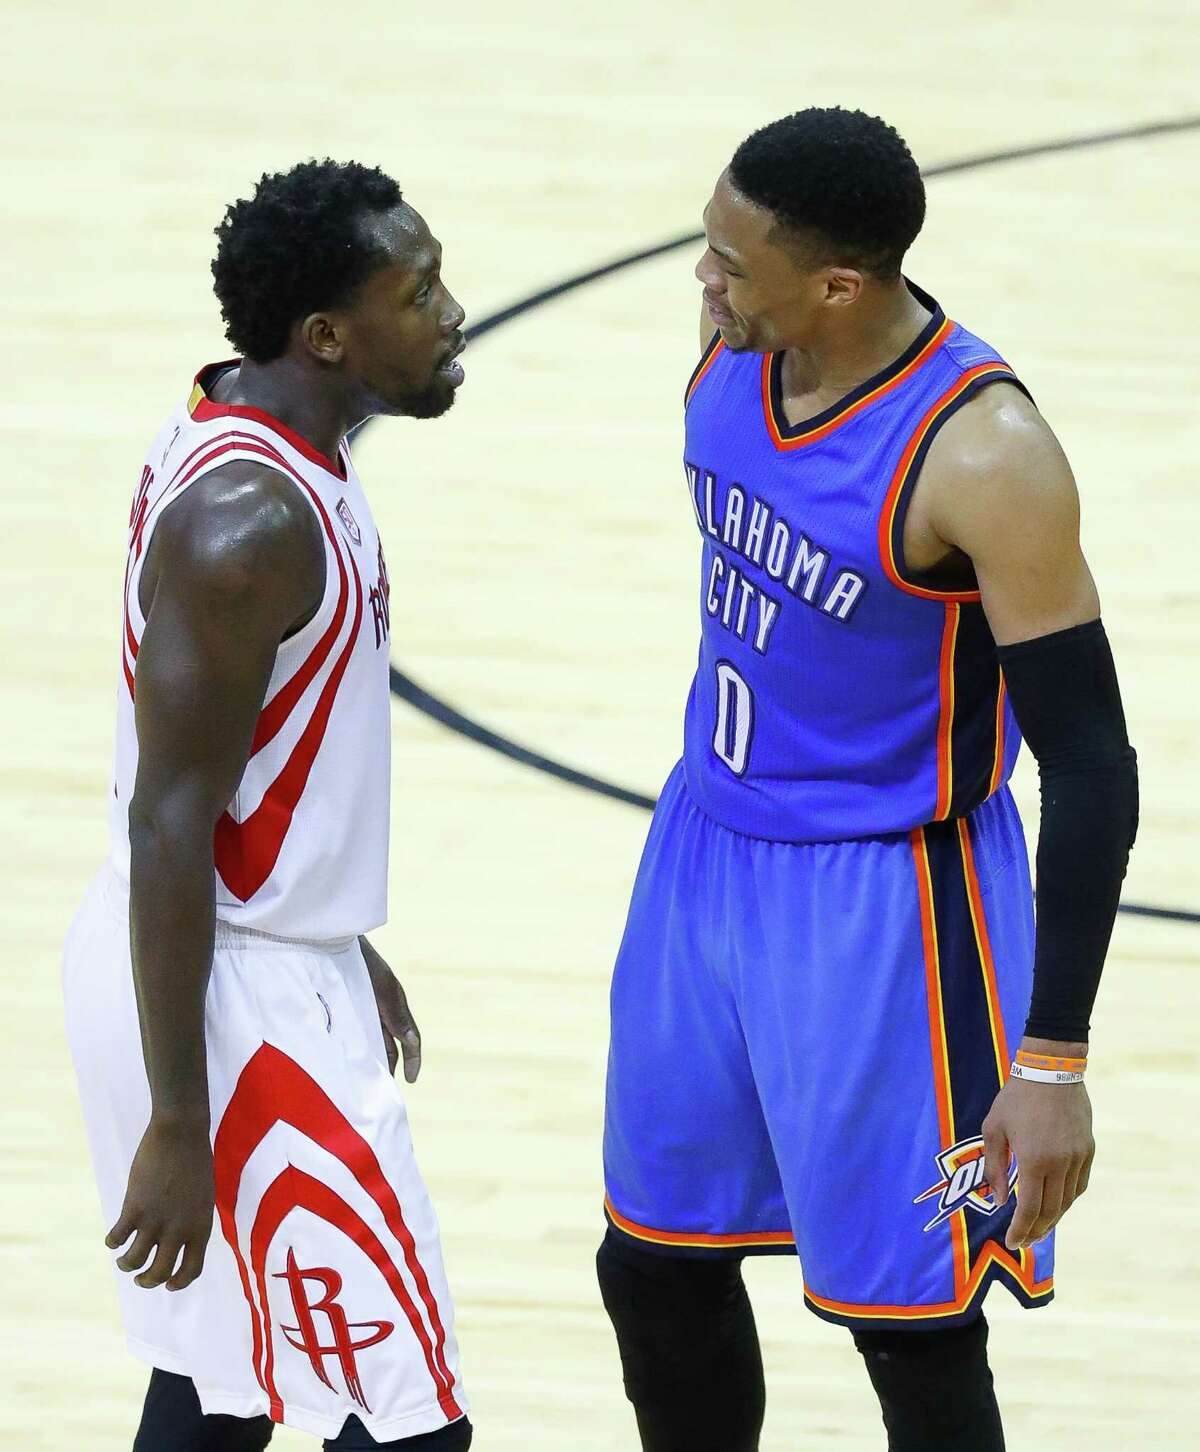 Houston Rockets guard Patrick Beverley (2) and Oklahoma City Thunder guard Russell Westbrook (0) have words that resulted in a double technical foul during the second half of Game 5 of a Western Conference quarterfinals of the 2017 NBA playoffs, Tuesday, April 24, 2017, at Toyota Center in Houston.